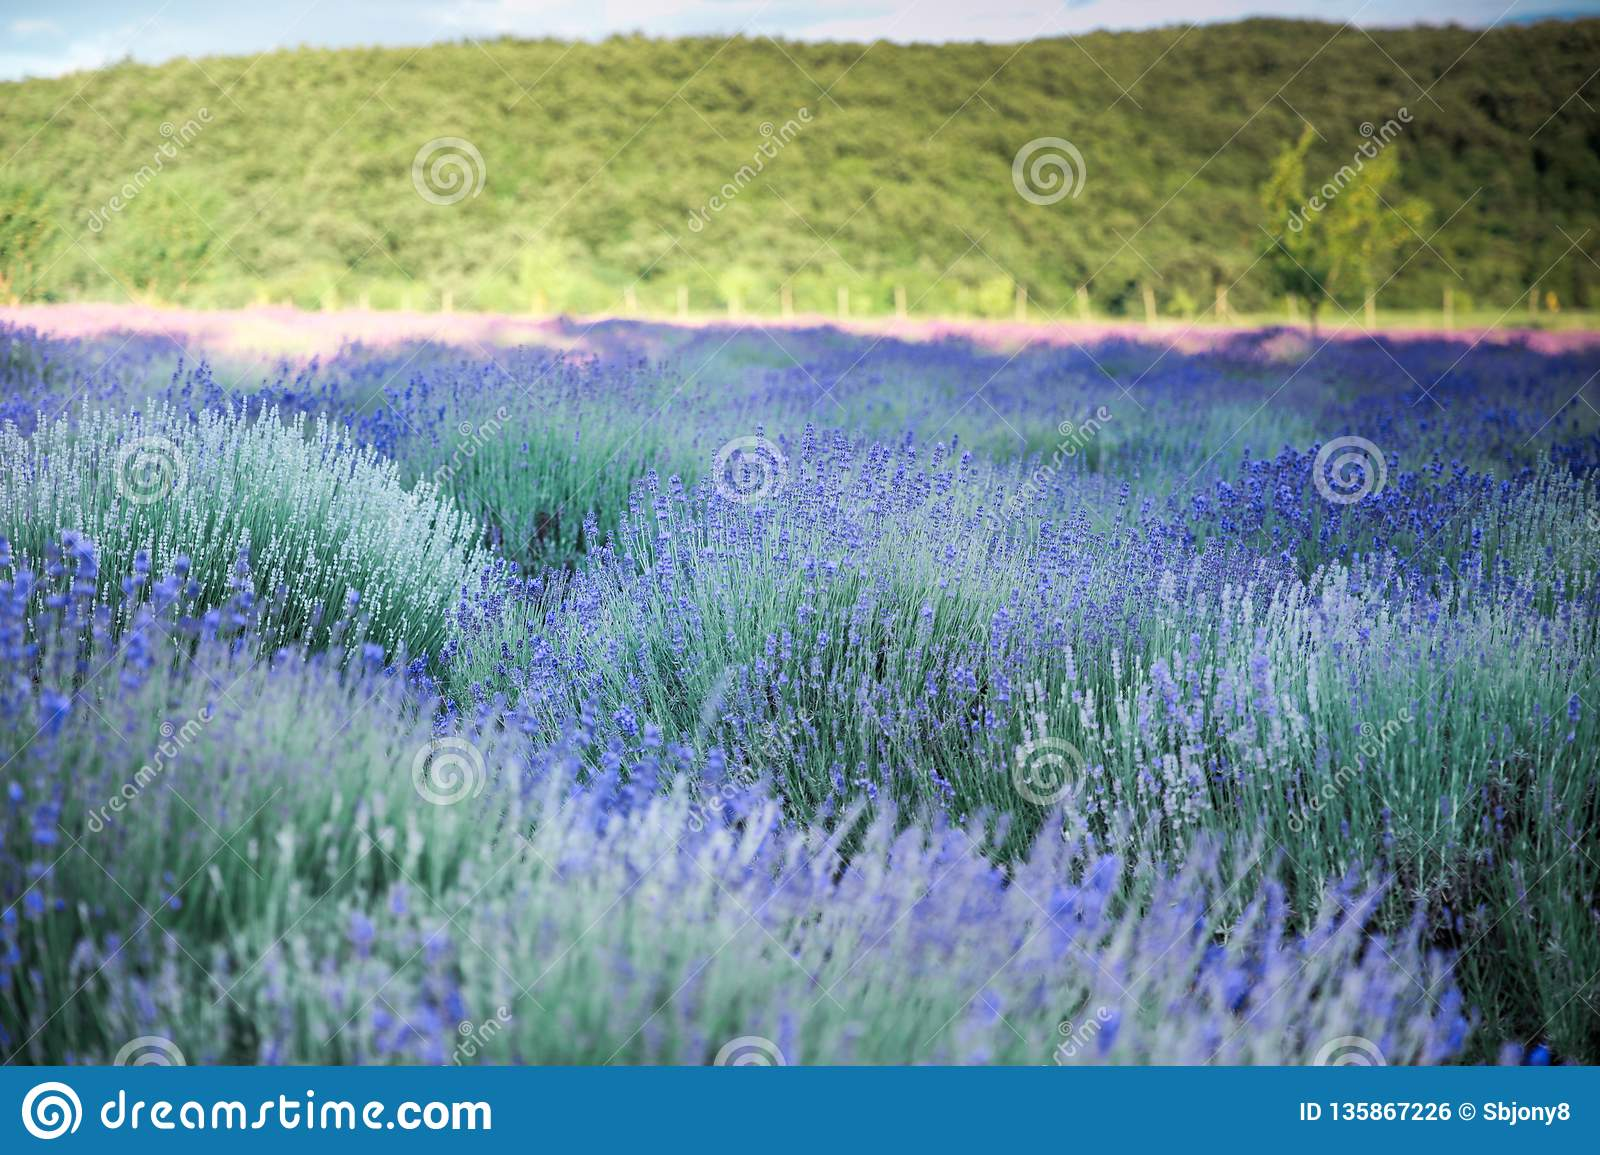 Lavender flowers on field in summer in Hungary